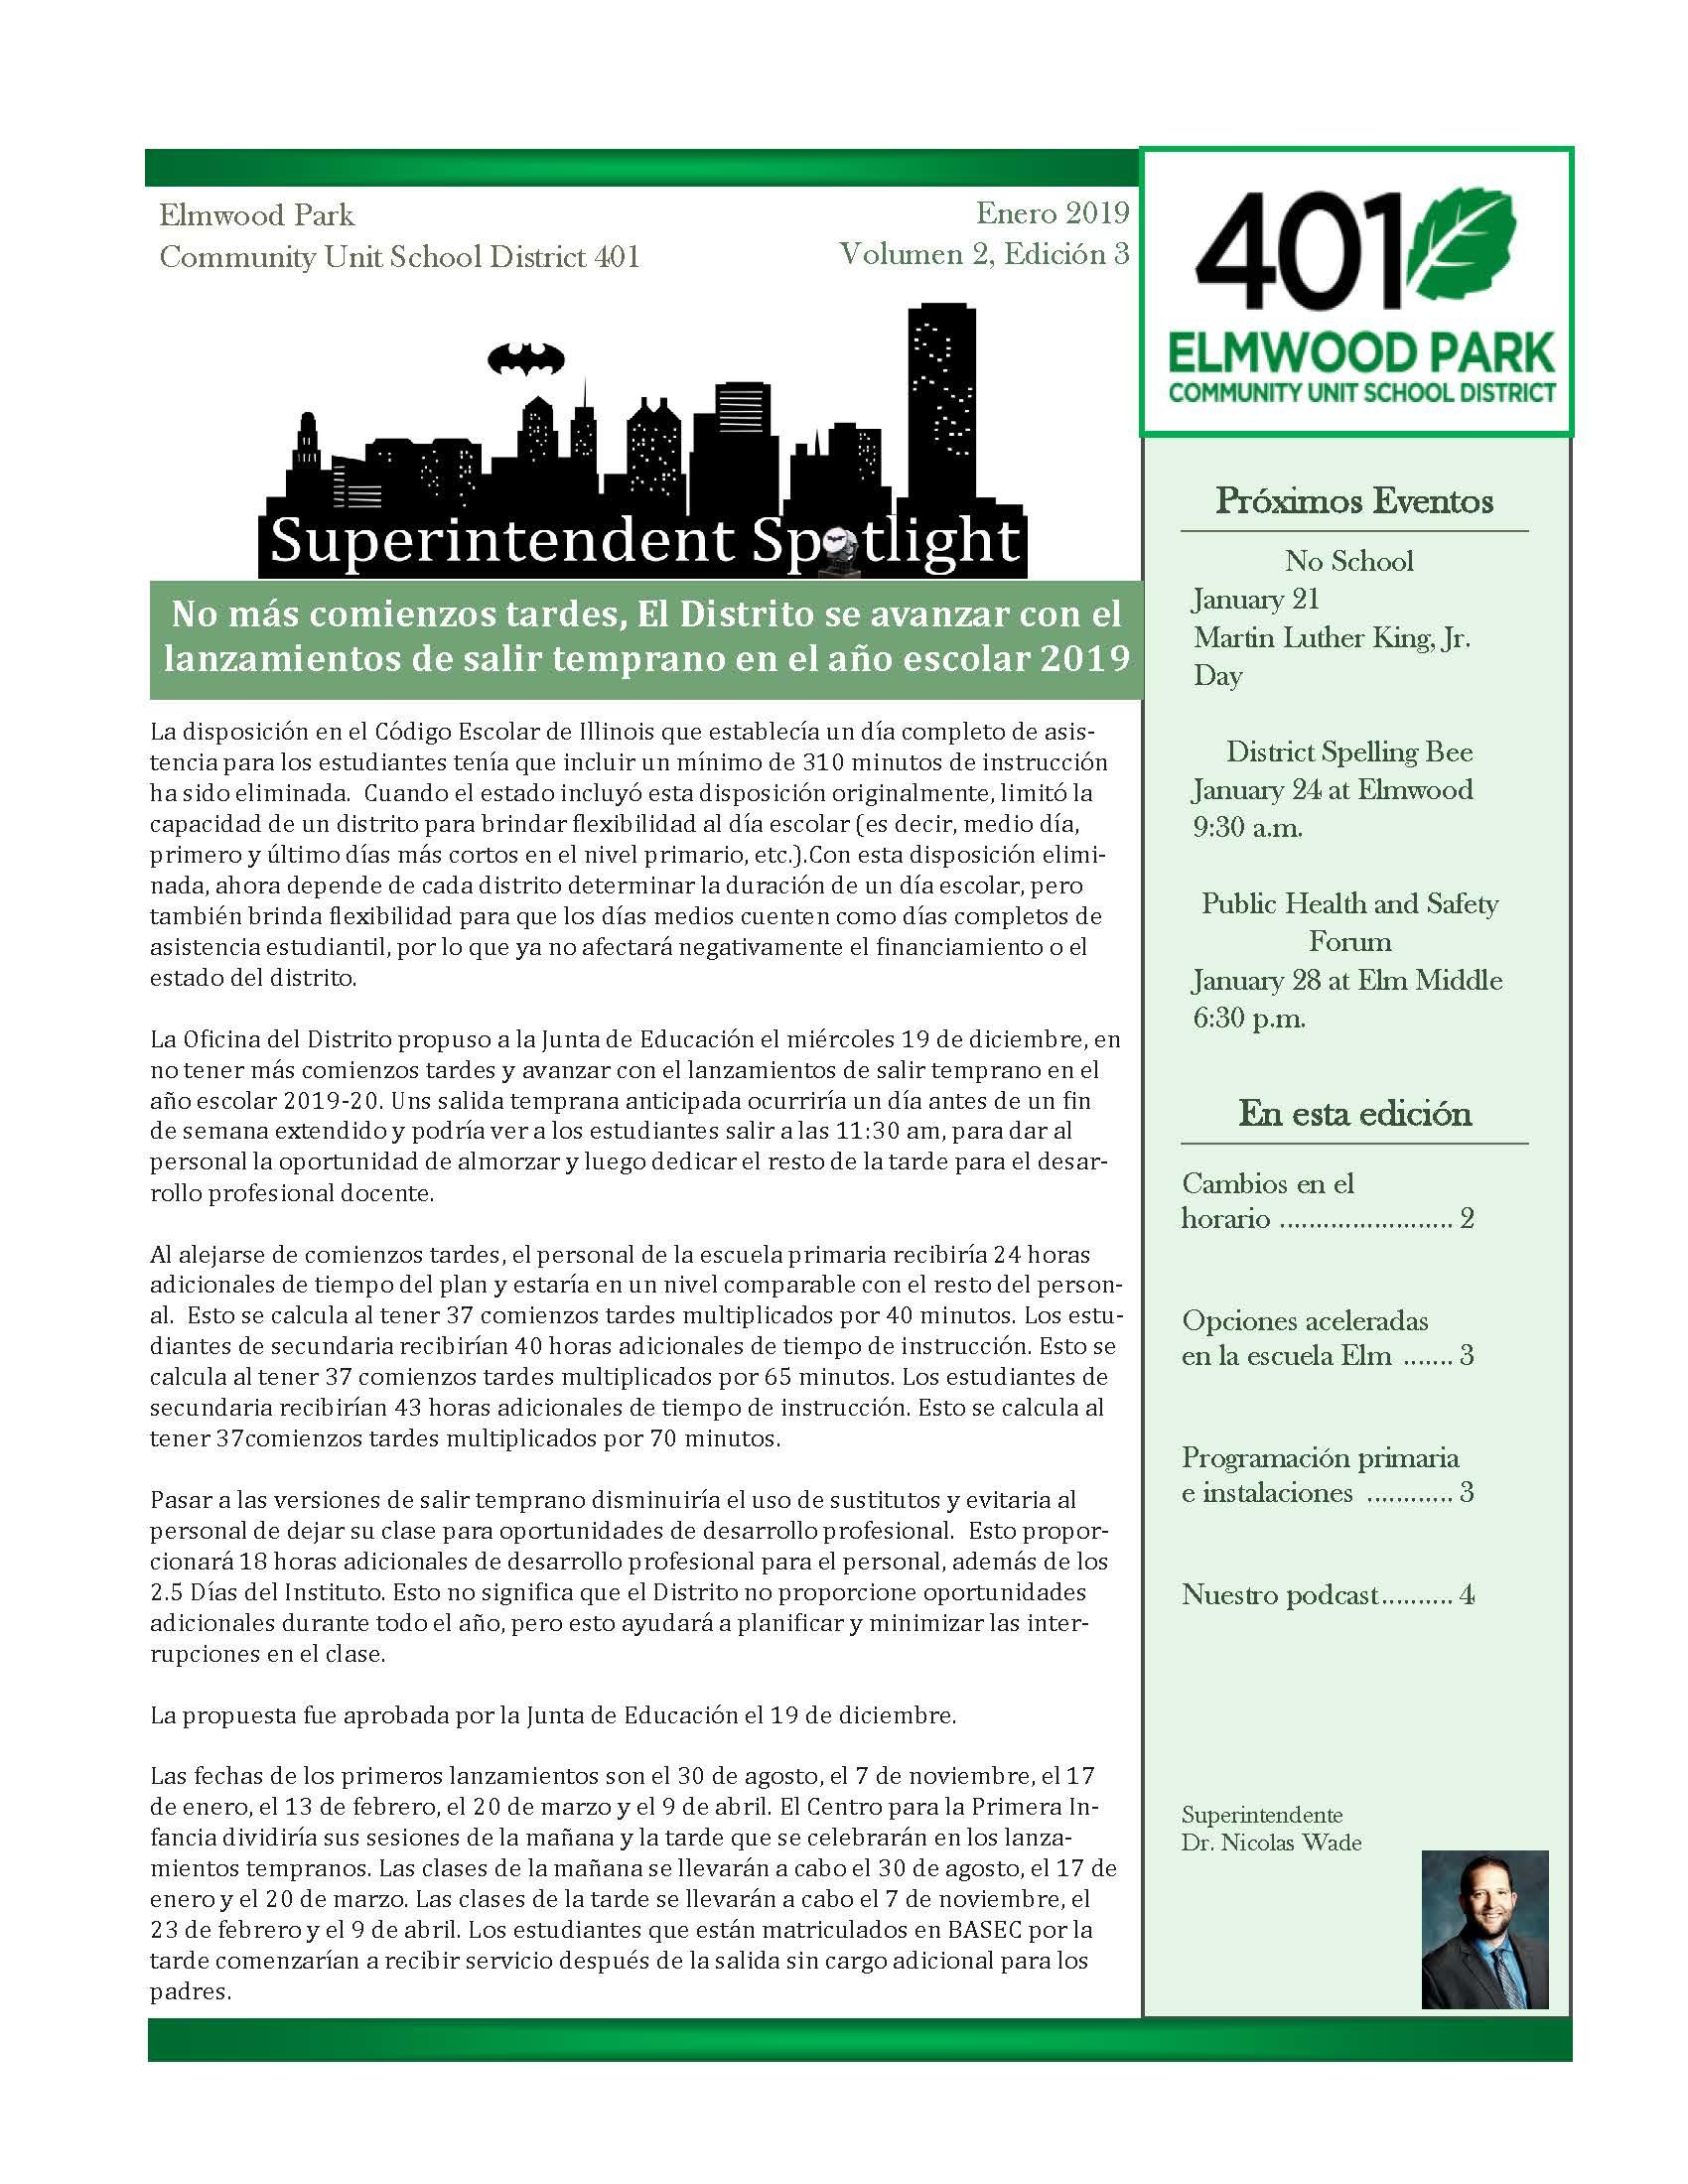 Superintendent Spotlight, Spanish edition, January 2019 issue, page 1